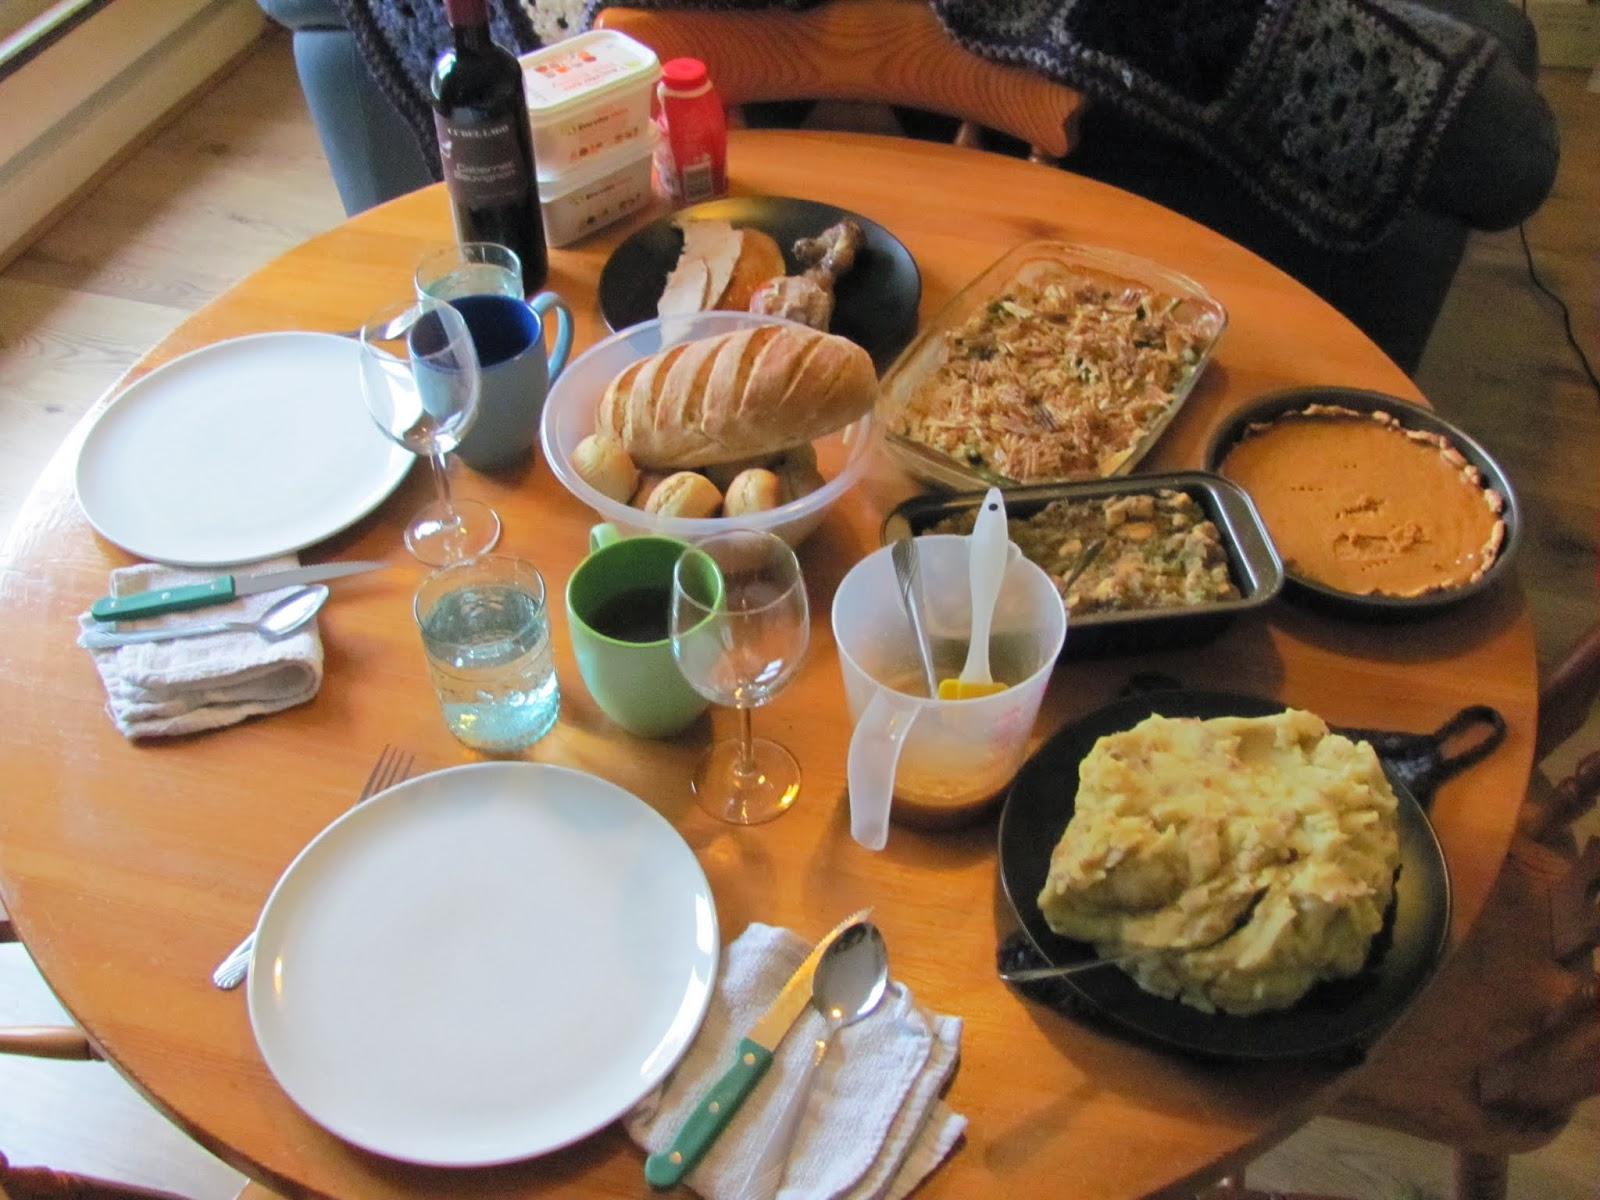 The table is laid out with potatoes, casserole, stuffing, pie, and turkey in Dublin Ireland Thanksgiving 2013